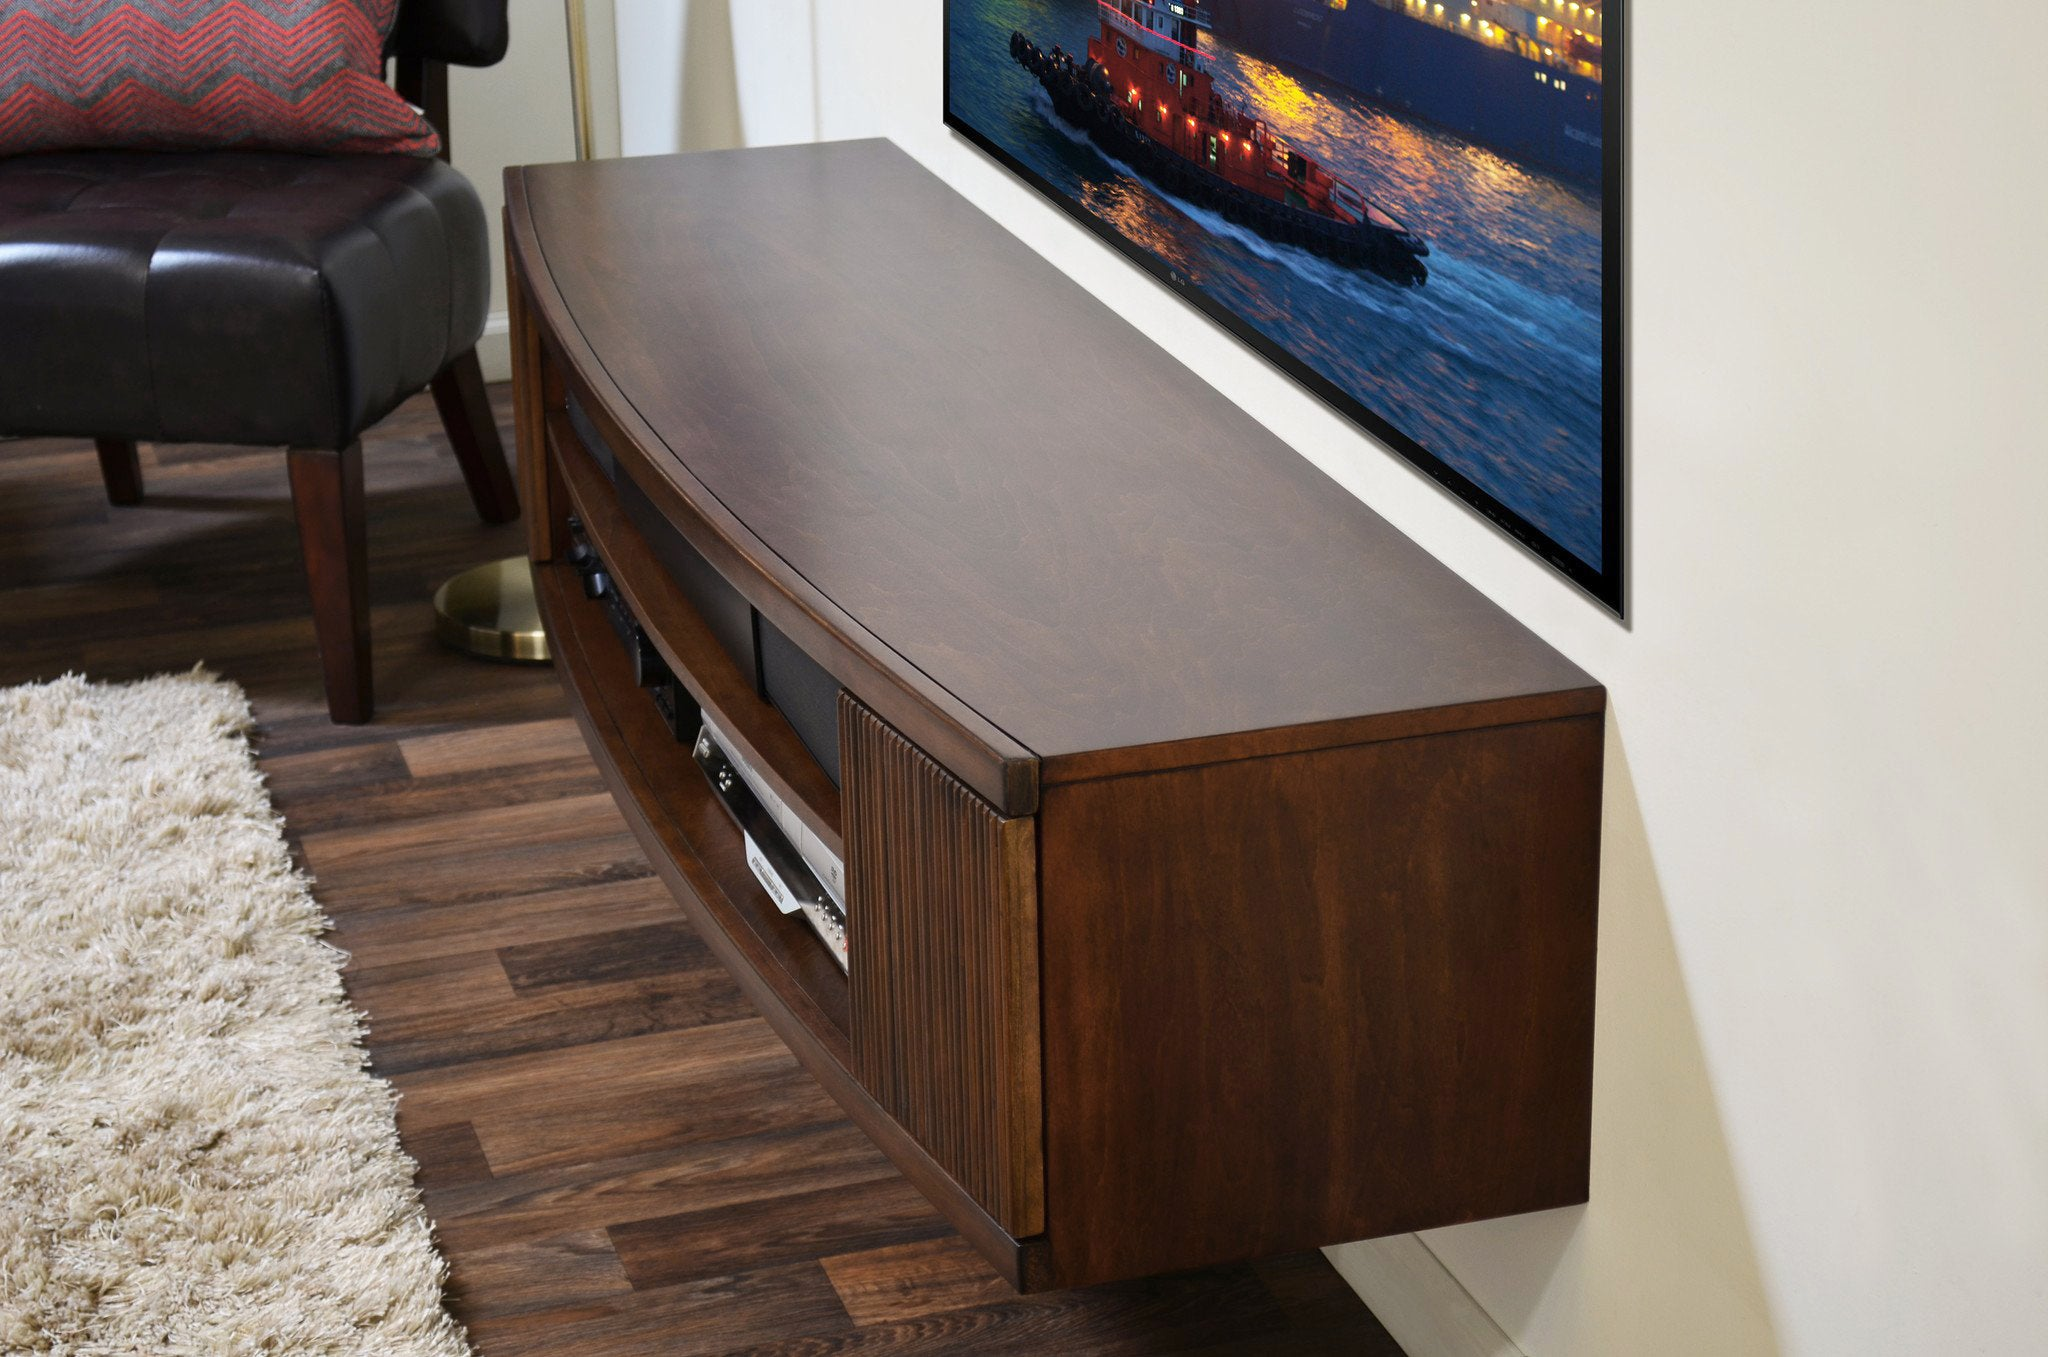 Curved Round Floating TV Console - The Curve - Mocha